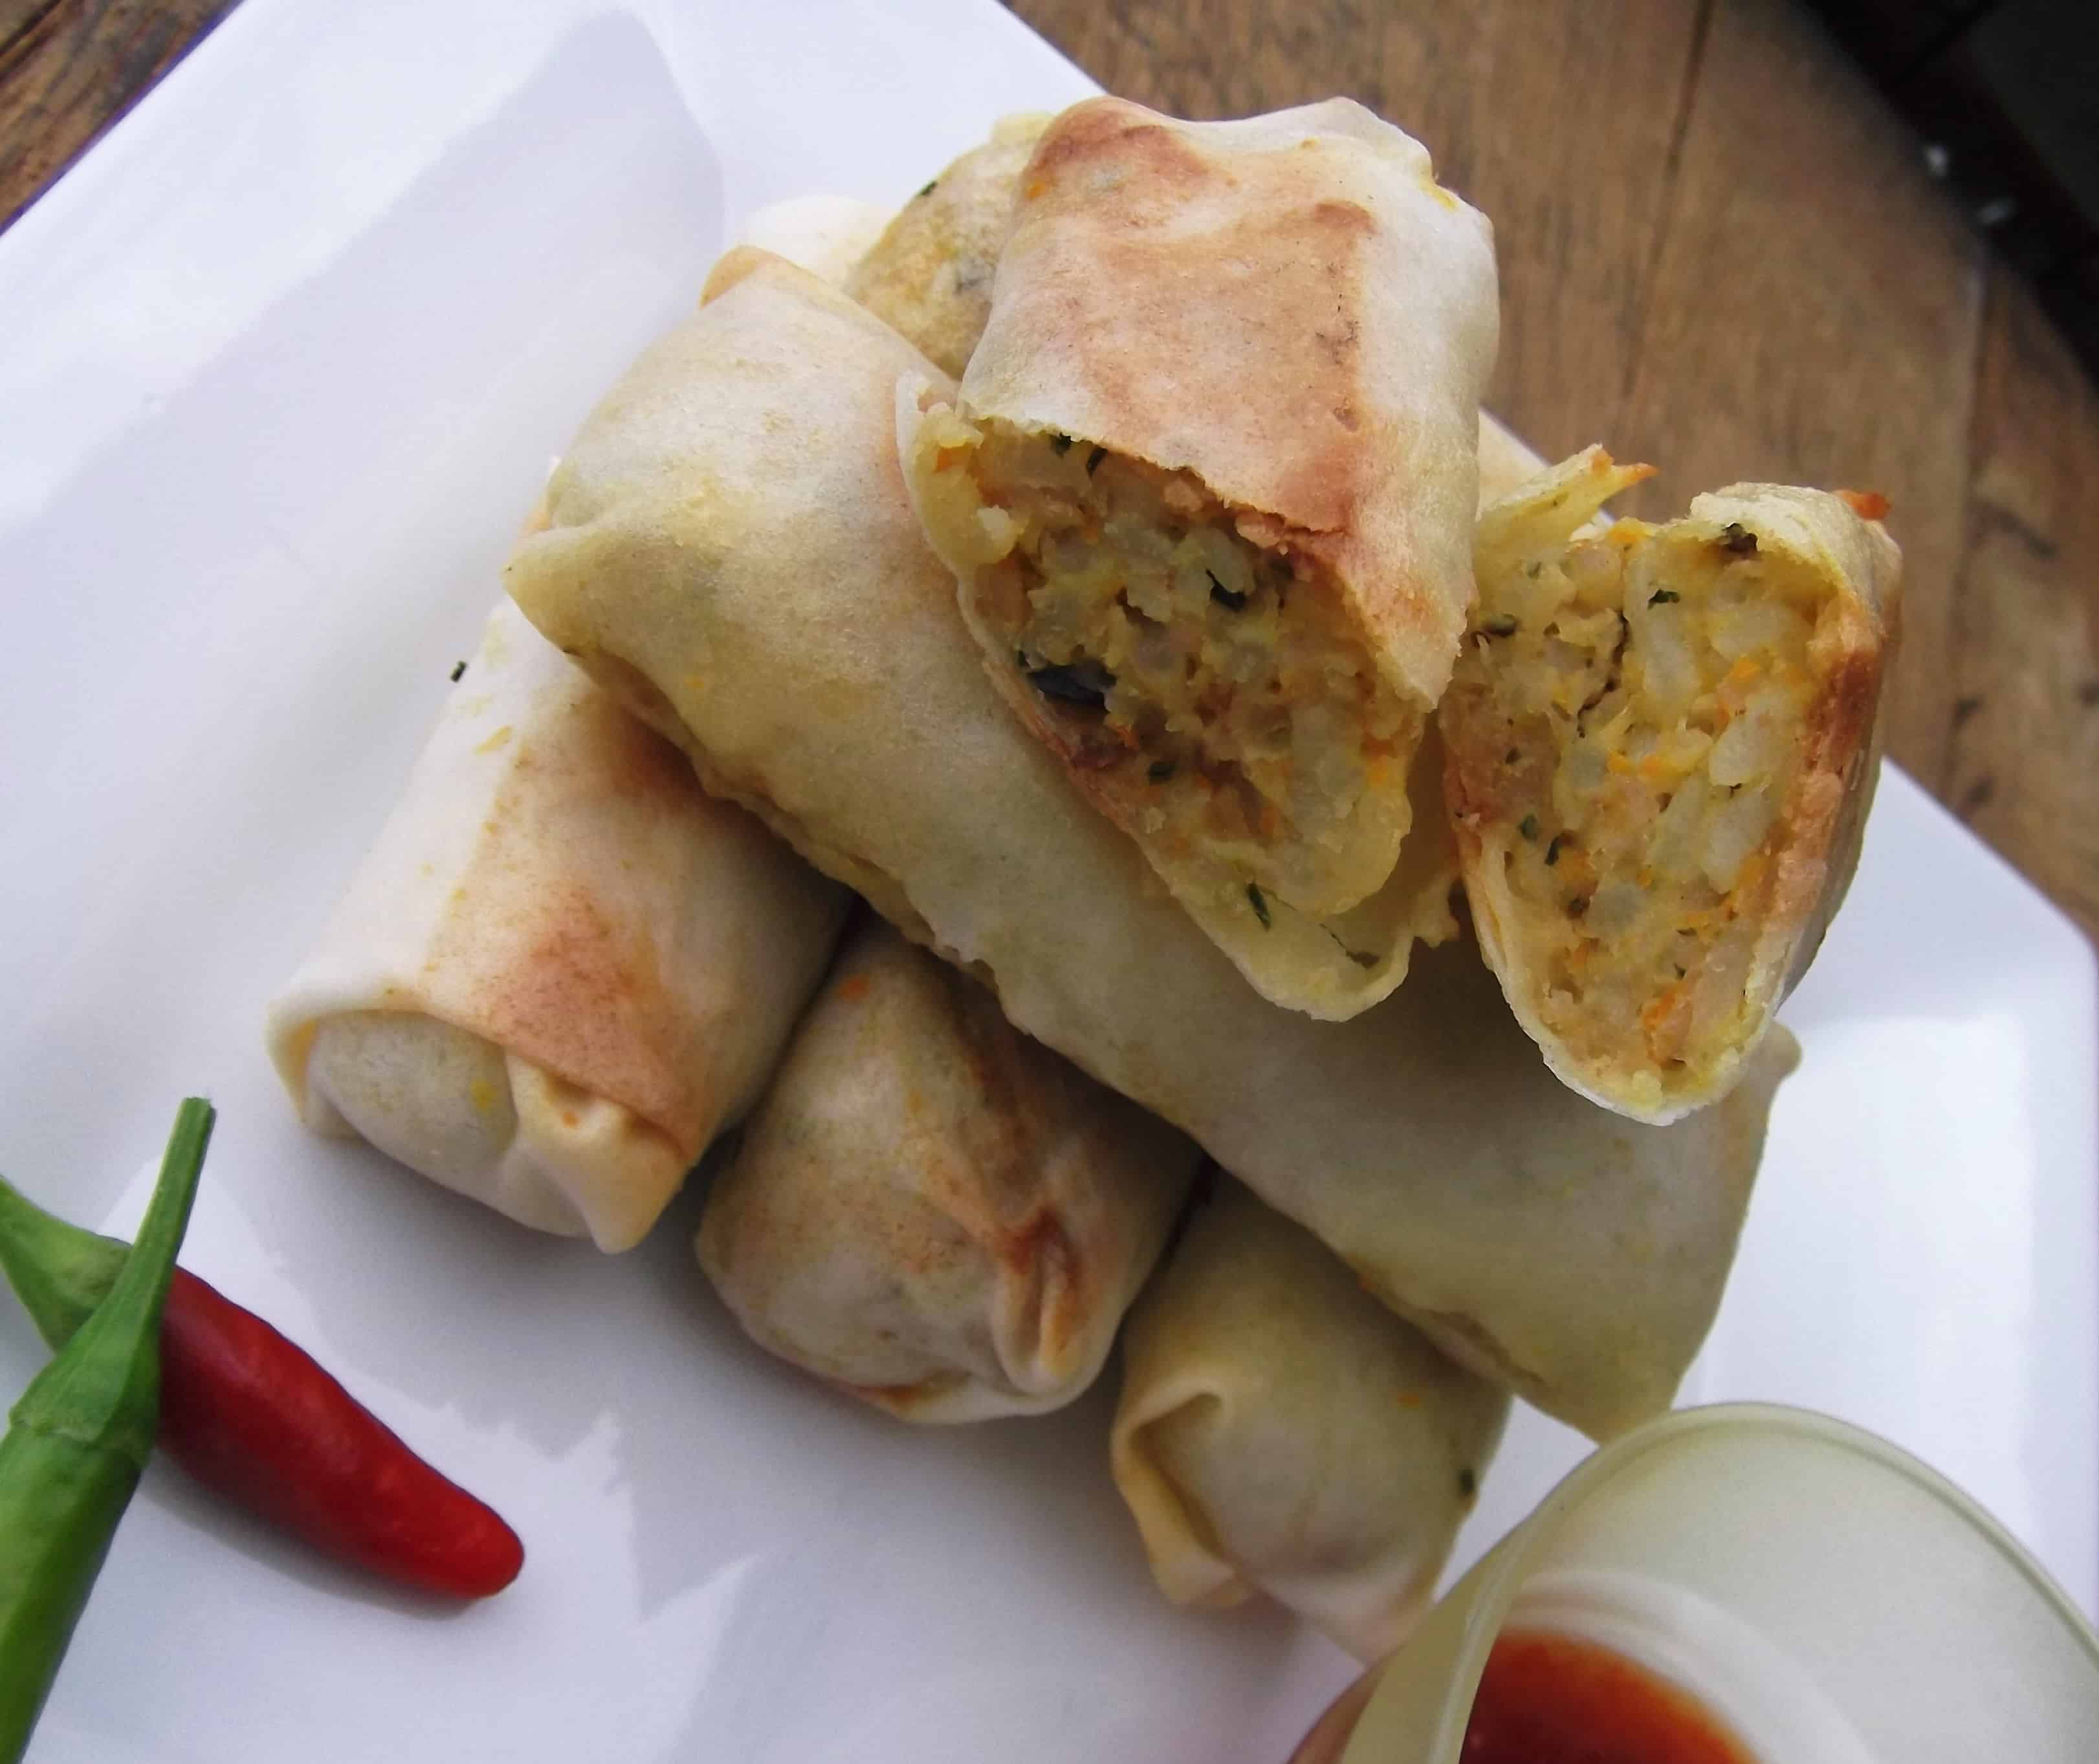 Thai minced chicken and rice spring rolles with sweet chili sauce